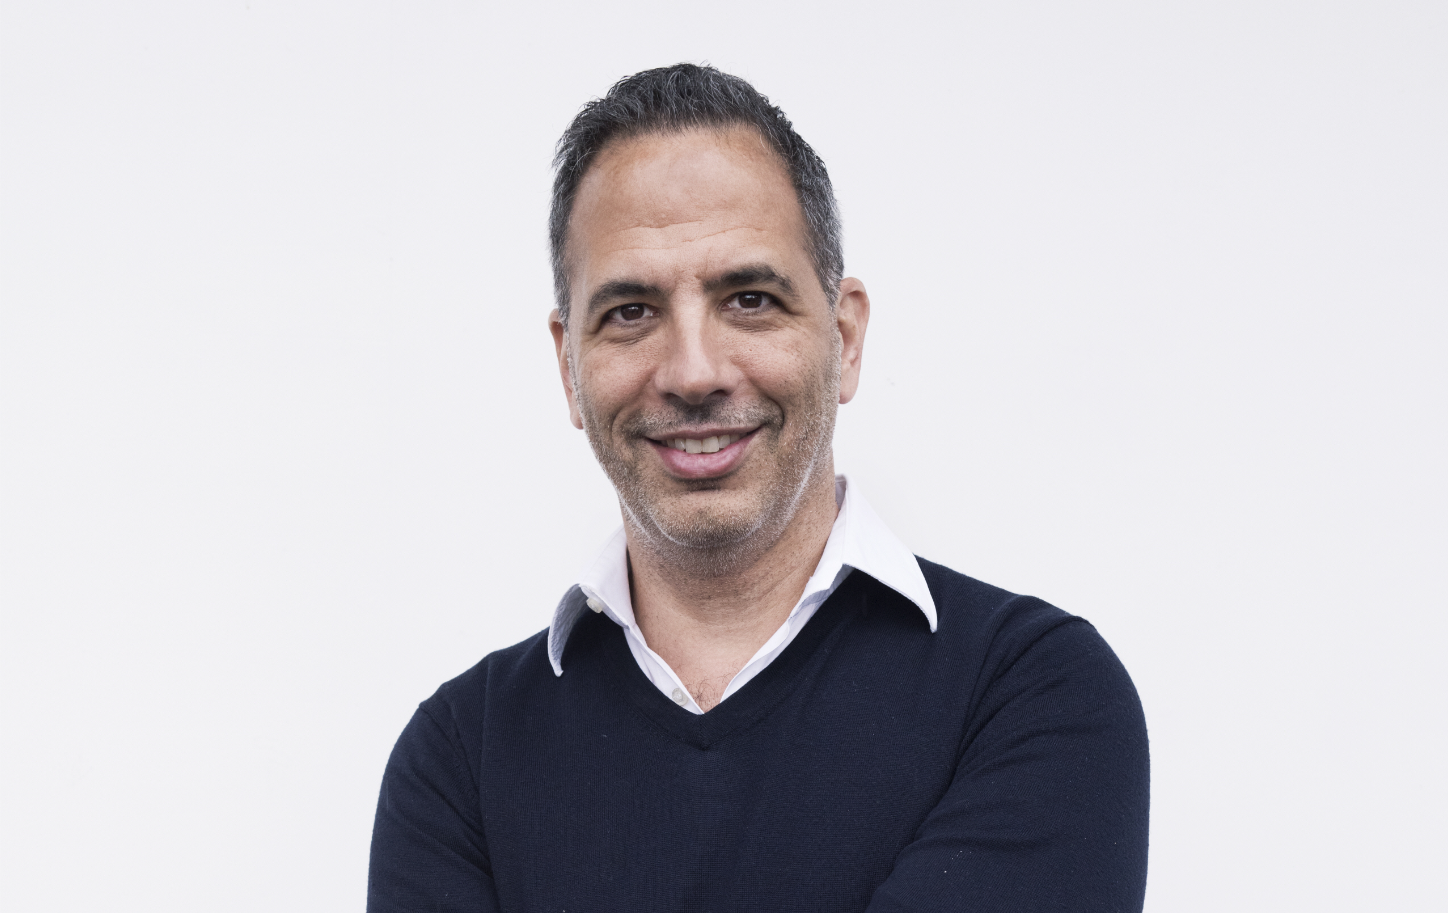 A Sitdown With Chef Yotam Ottolenghi